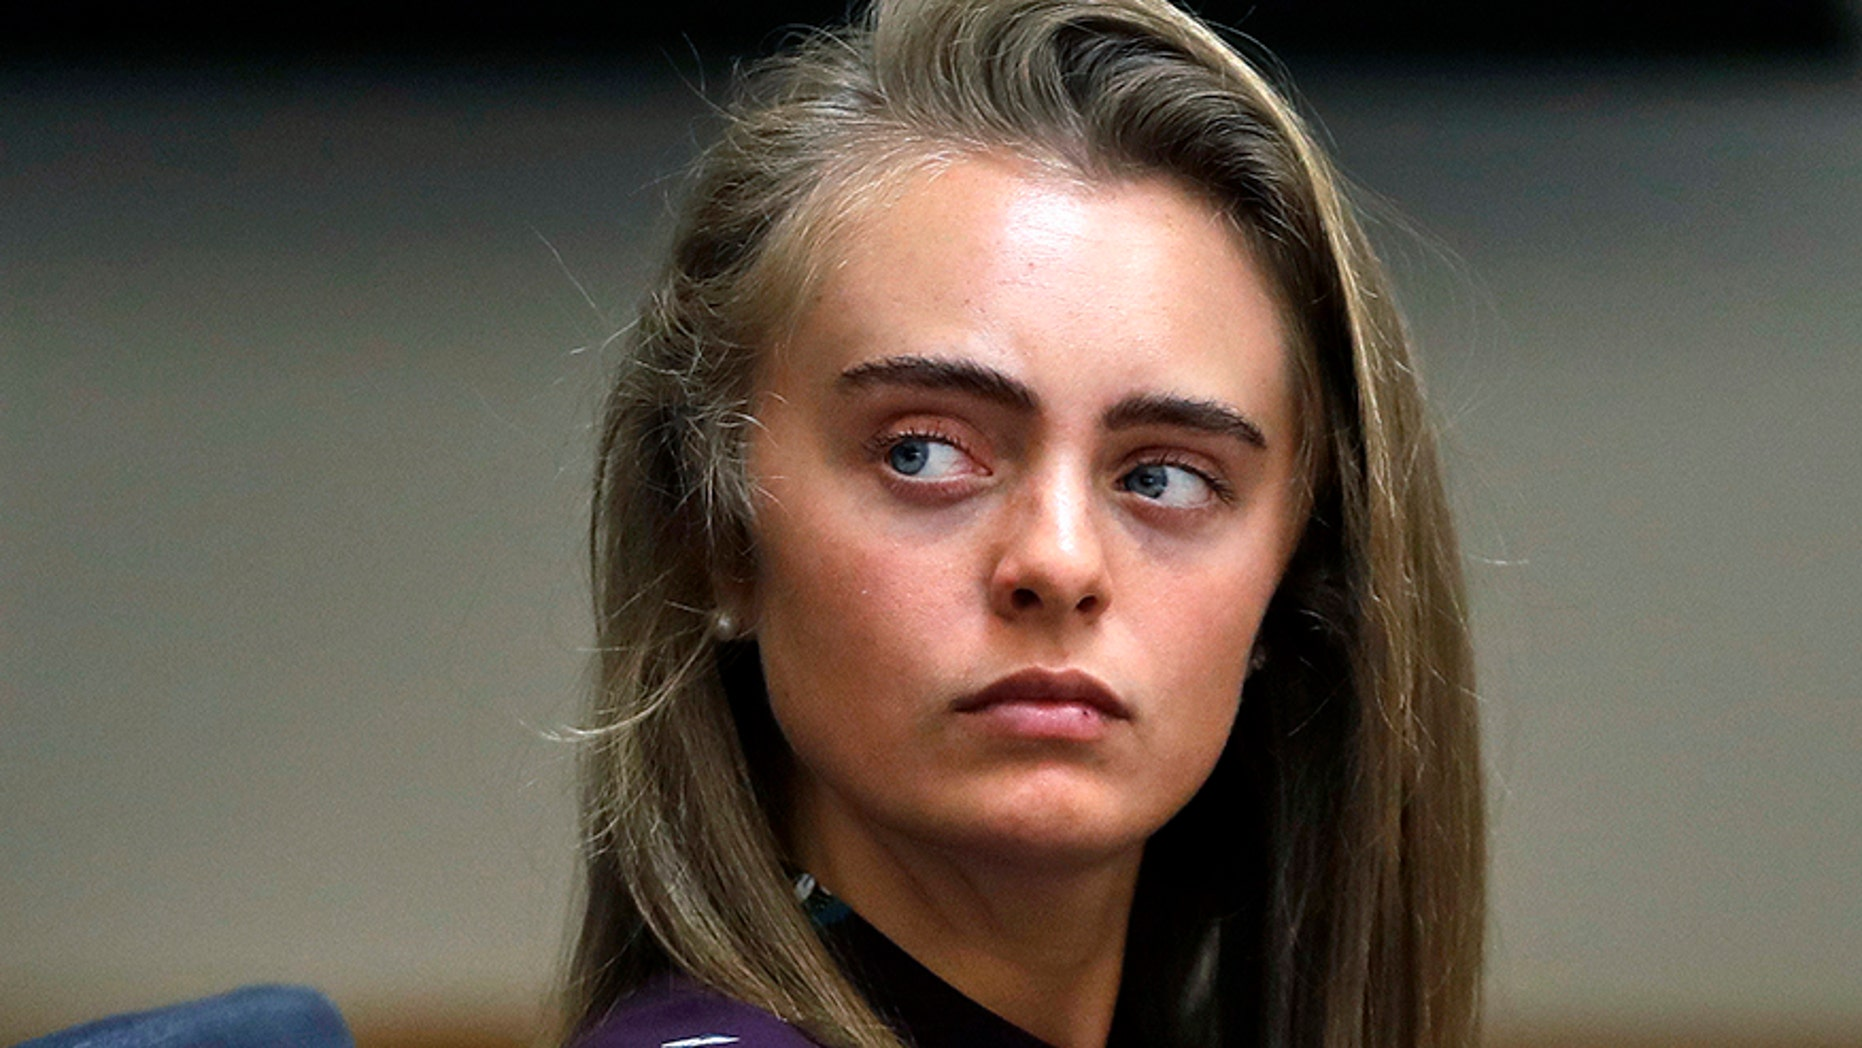 June 8, 2017: Defendant Michelle Carter listens to testimony at Taunton District Court in Taunton, Mass.